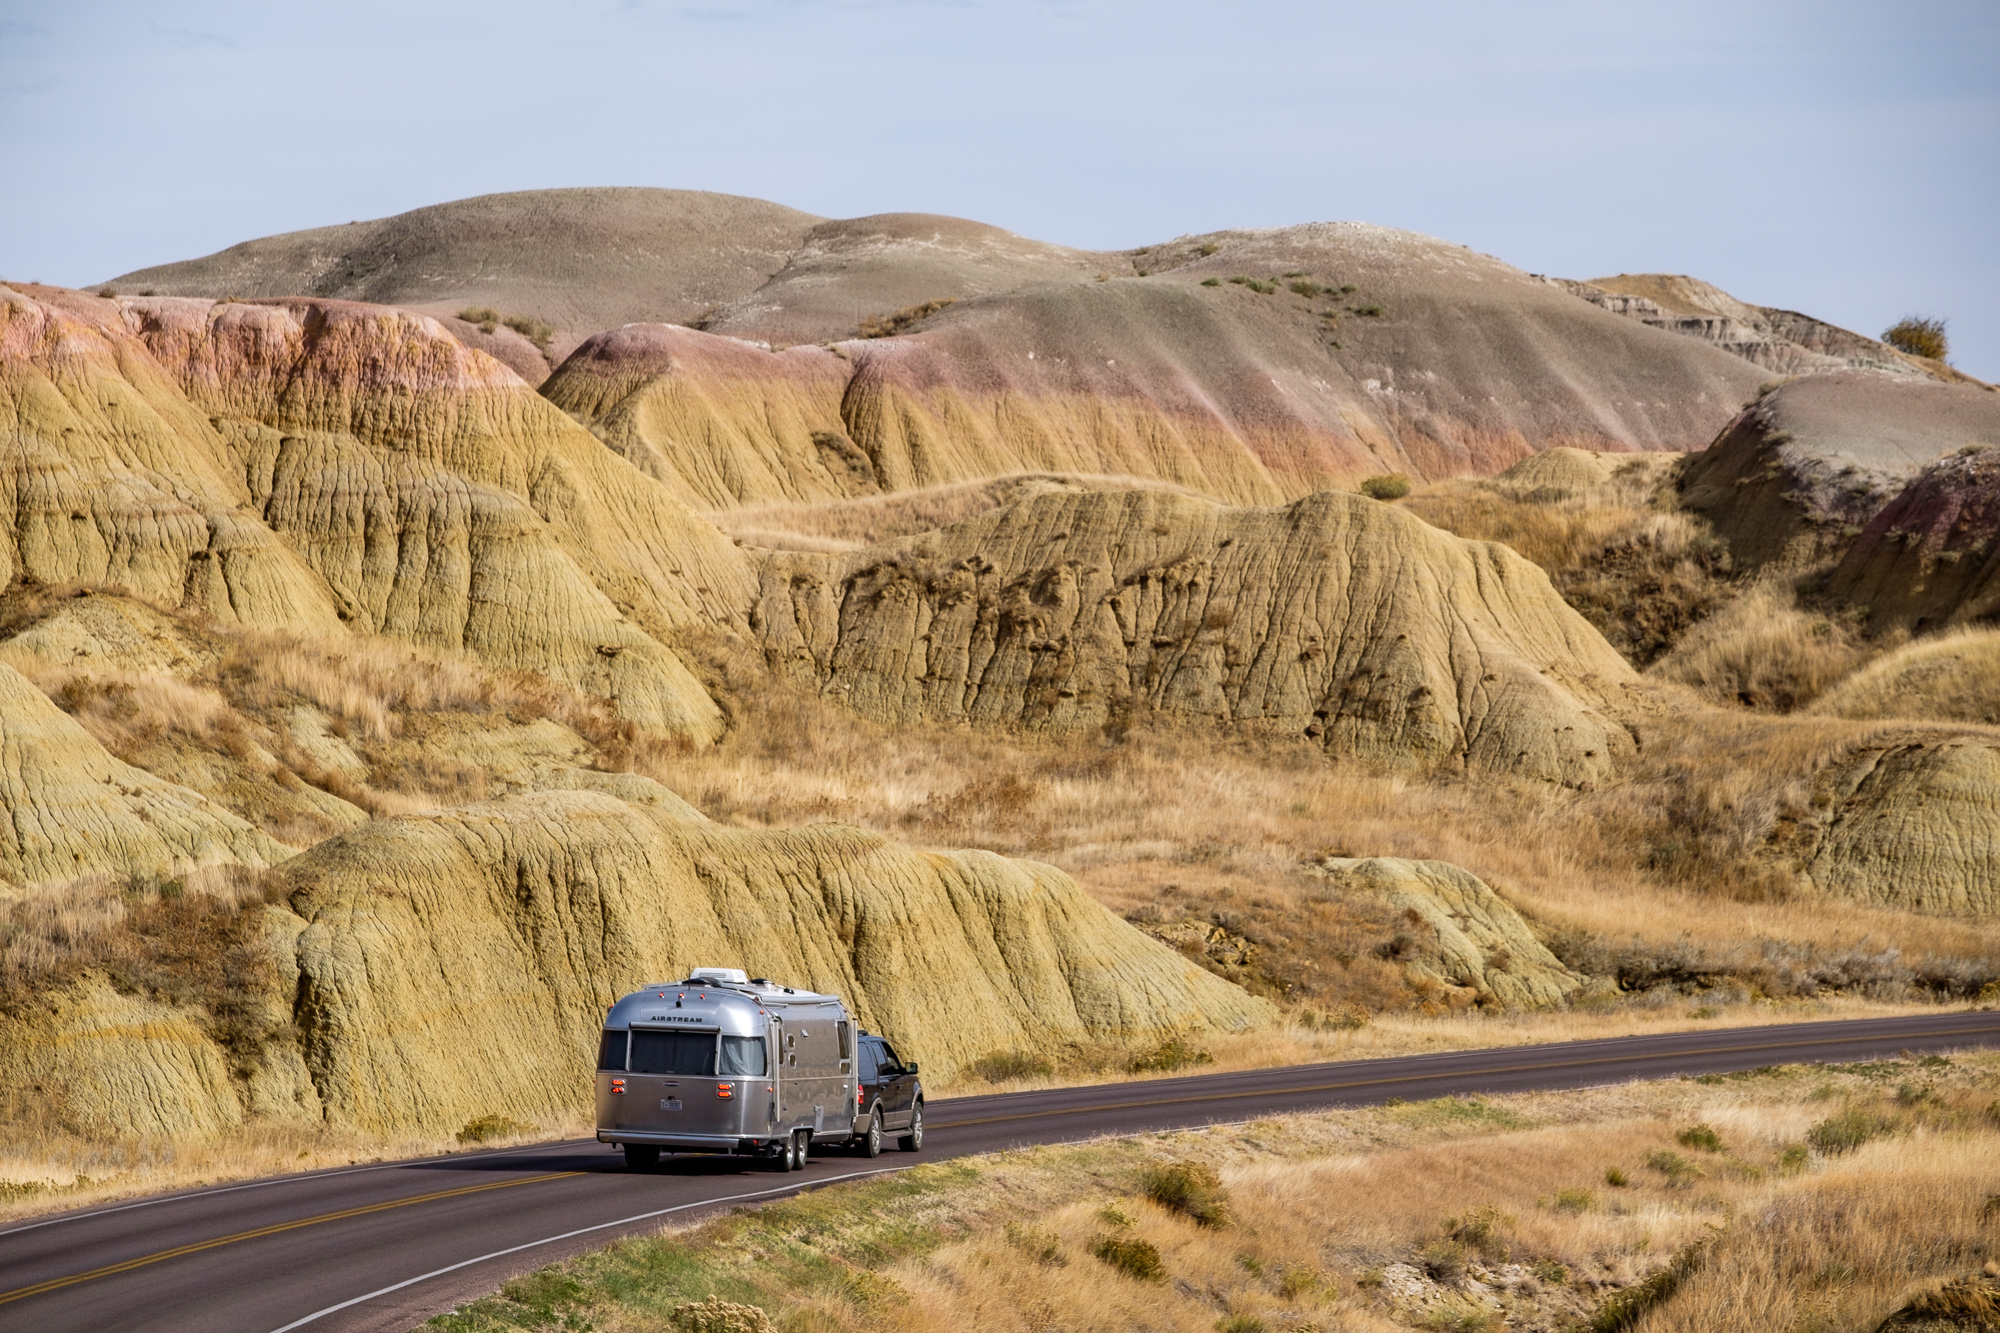 Badlands National Park - 013.jpg